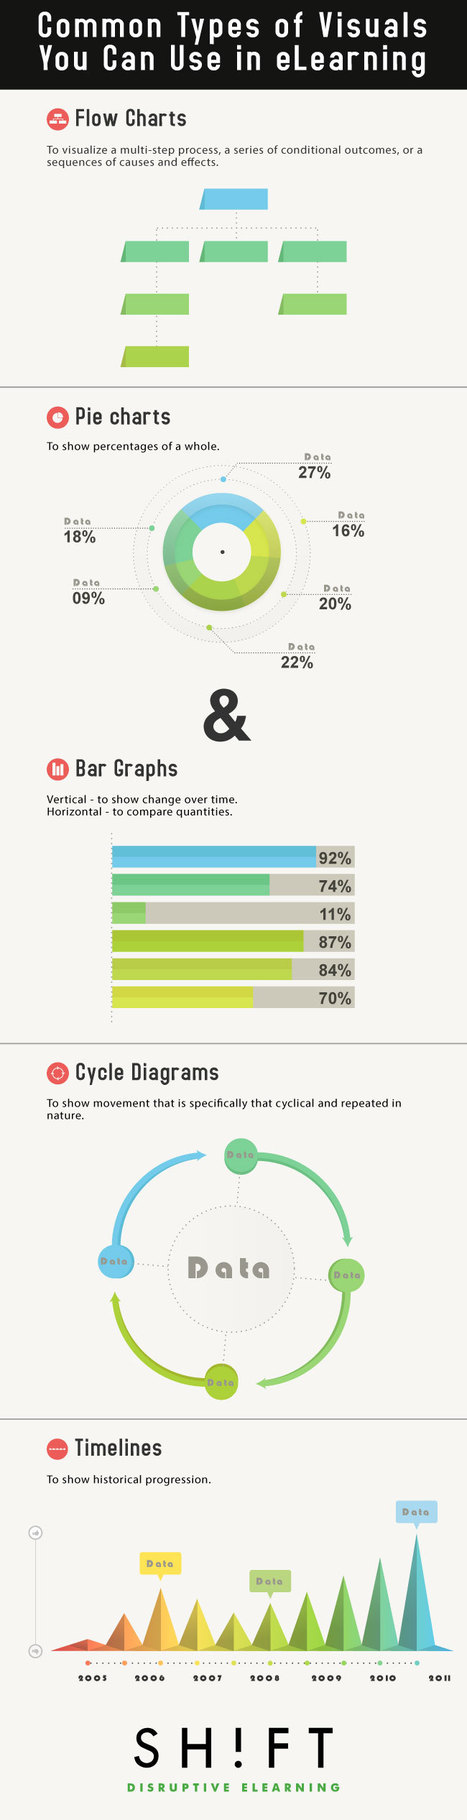 4 Types of Visuals You Can Use in eLearning, And Why They Work | APRENDIZAJE | Scoop.it